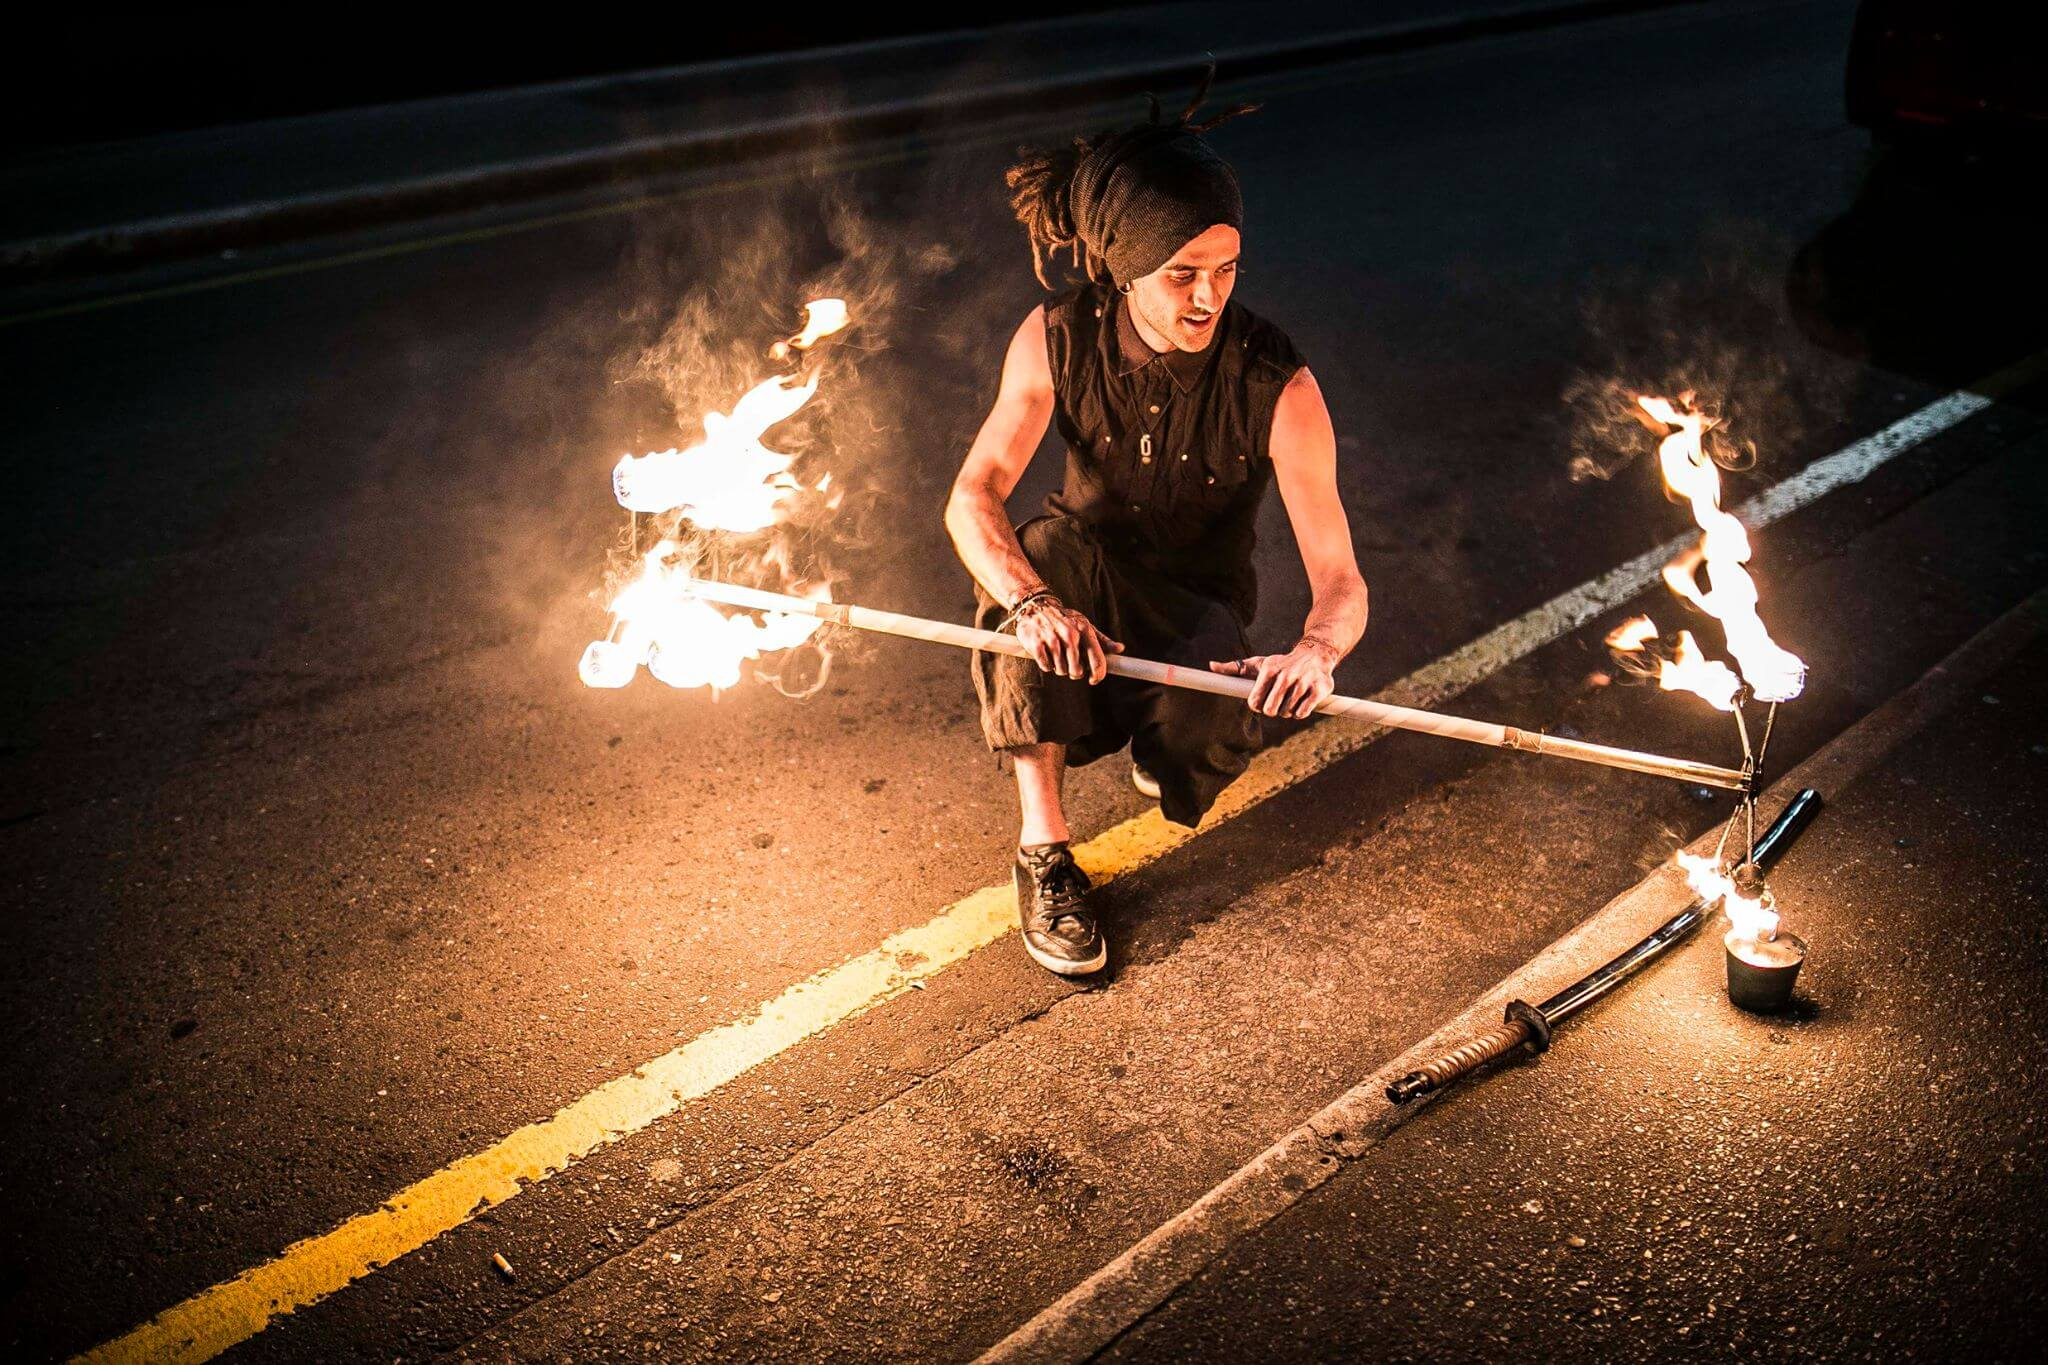 fire dancing - Dragon Staff - Fire safety